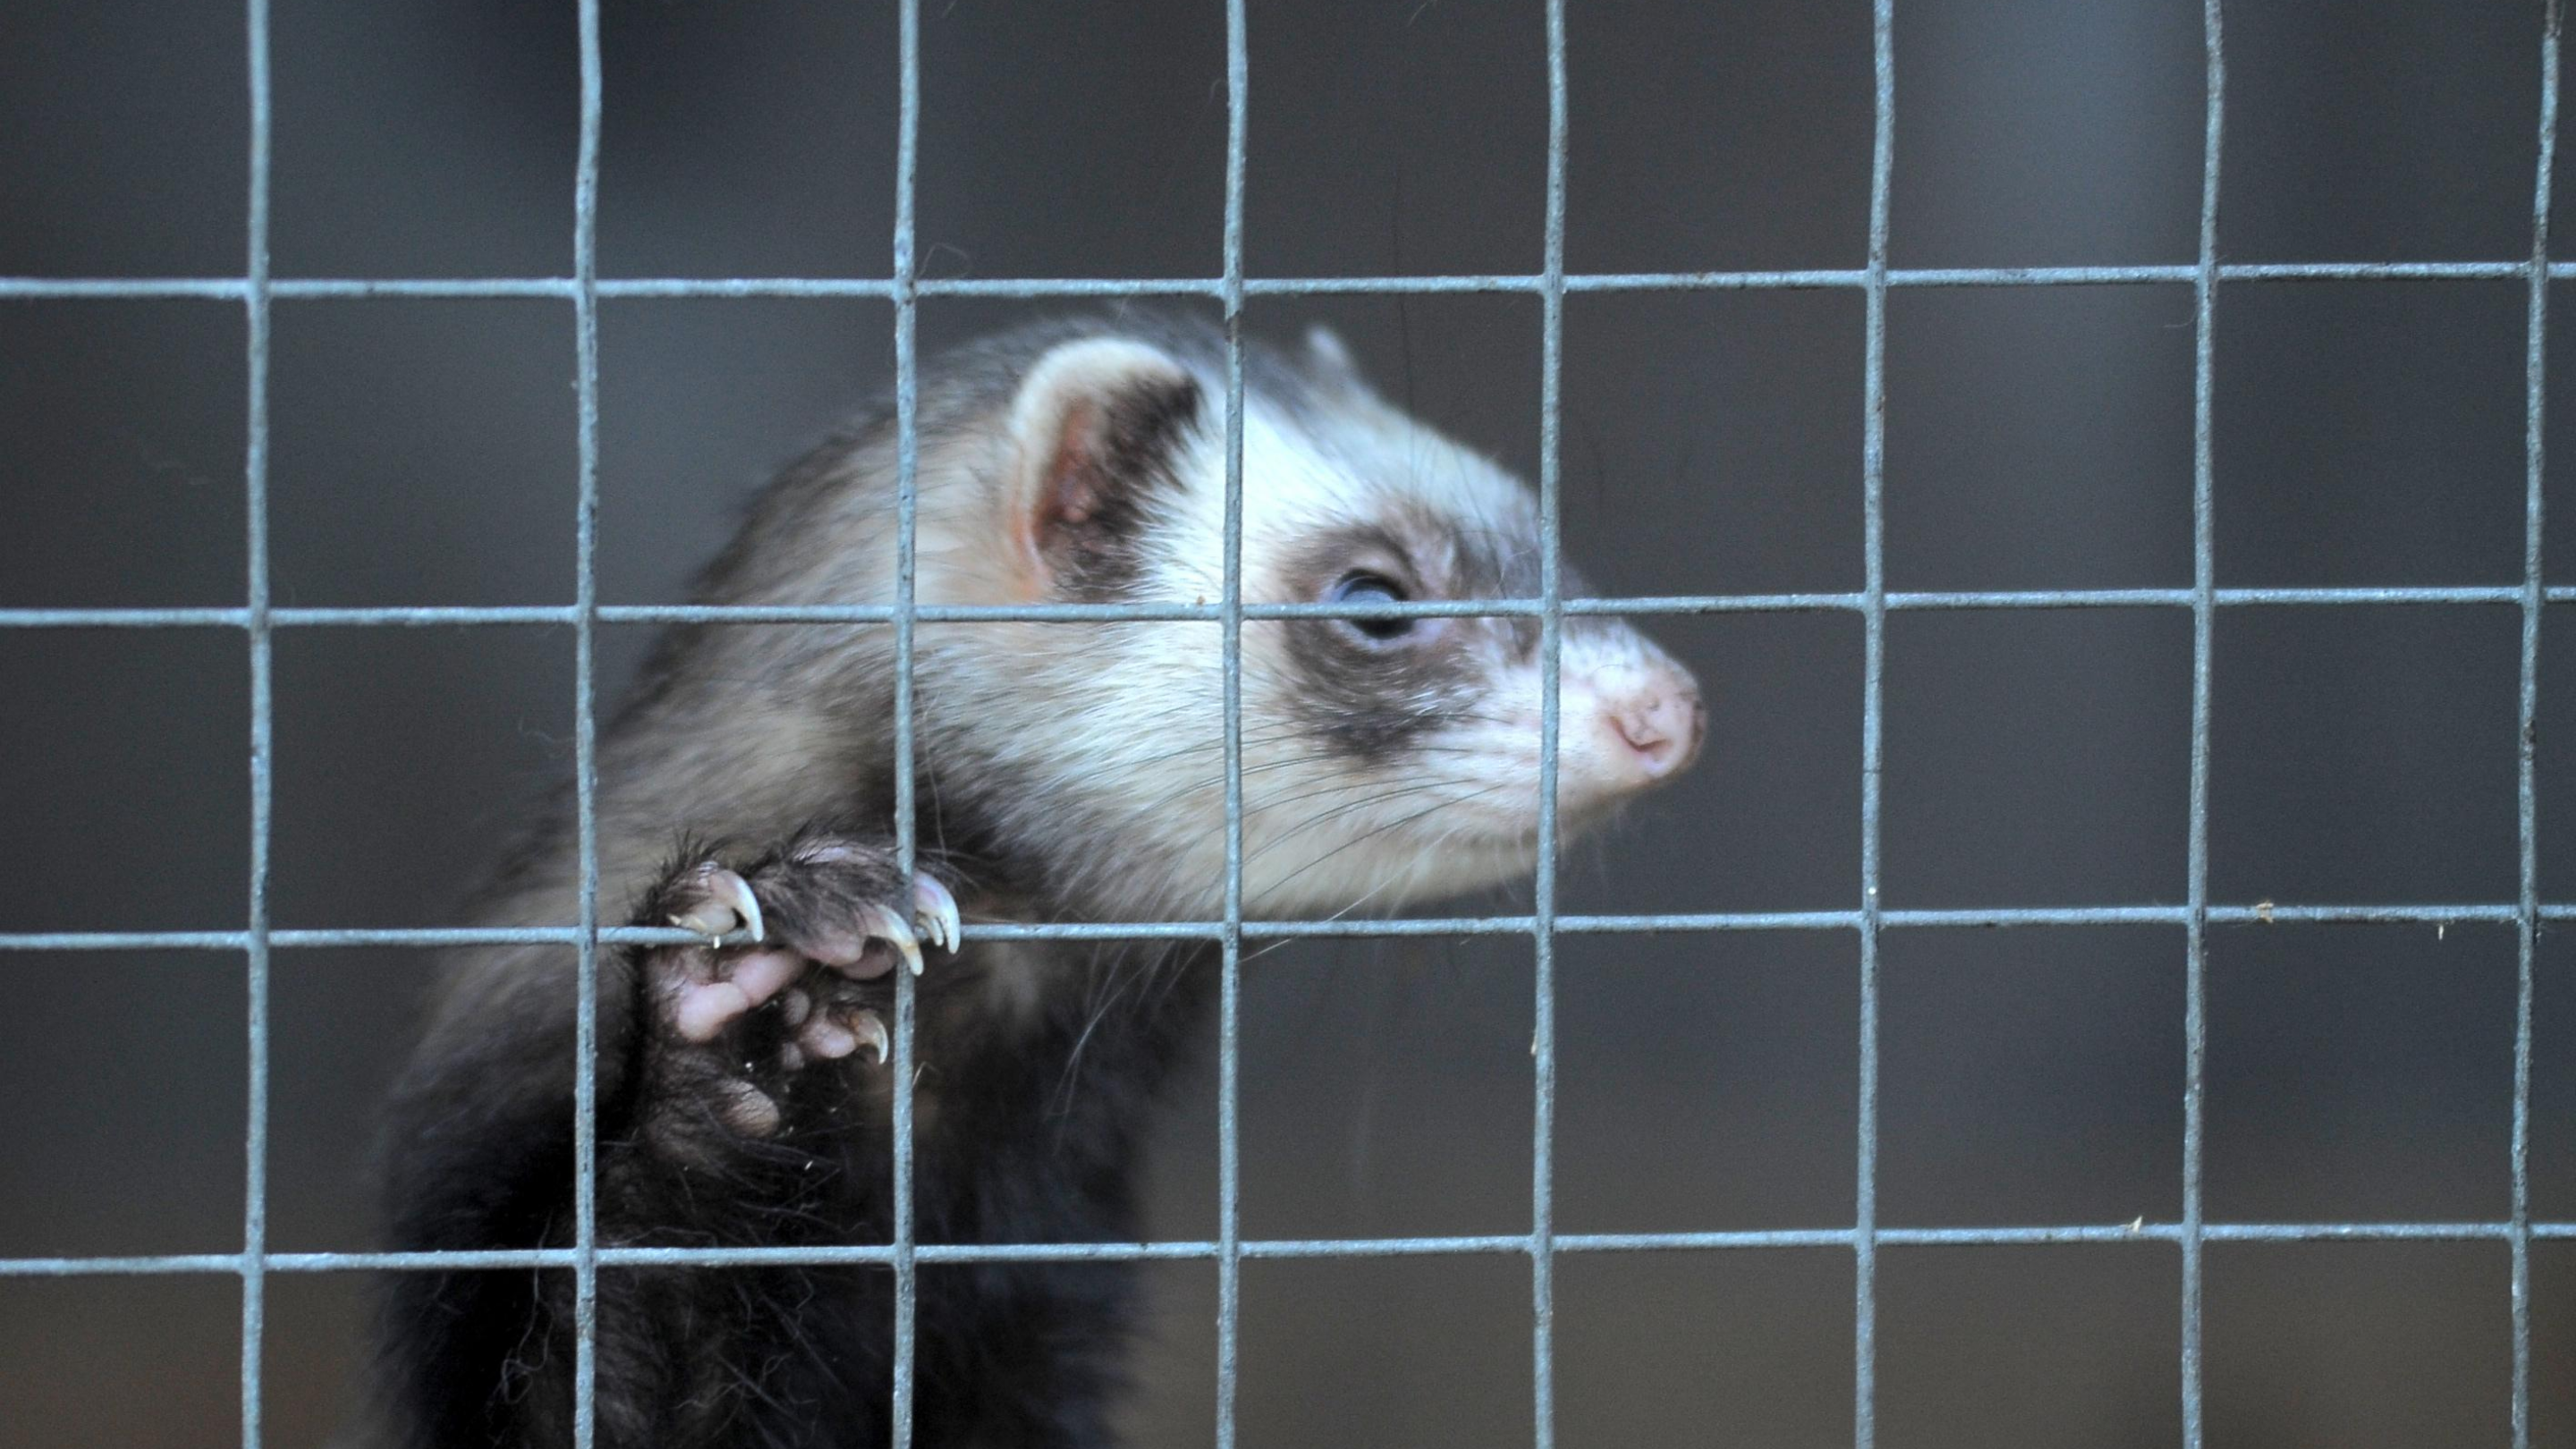 A ferret clings to cage bars